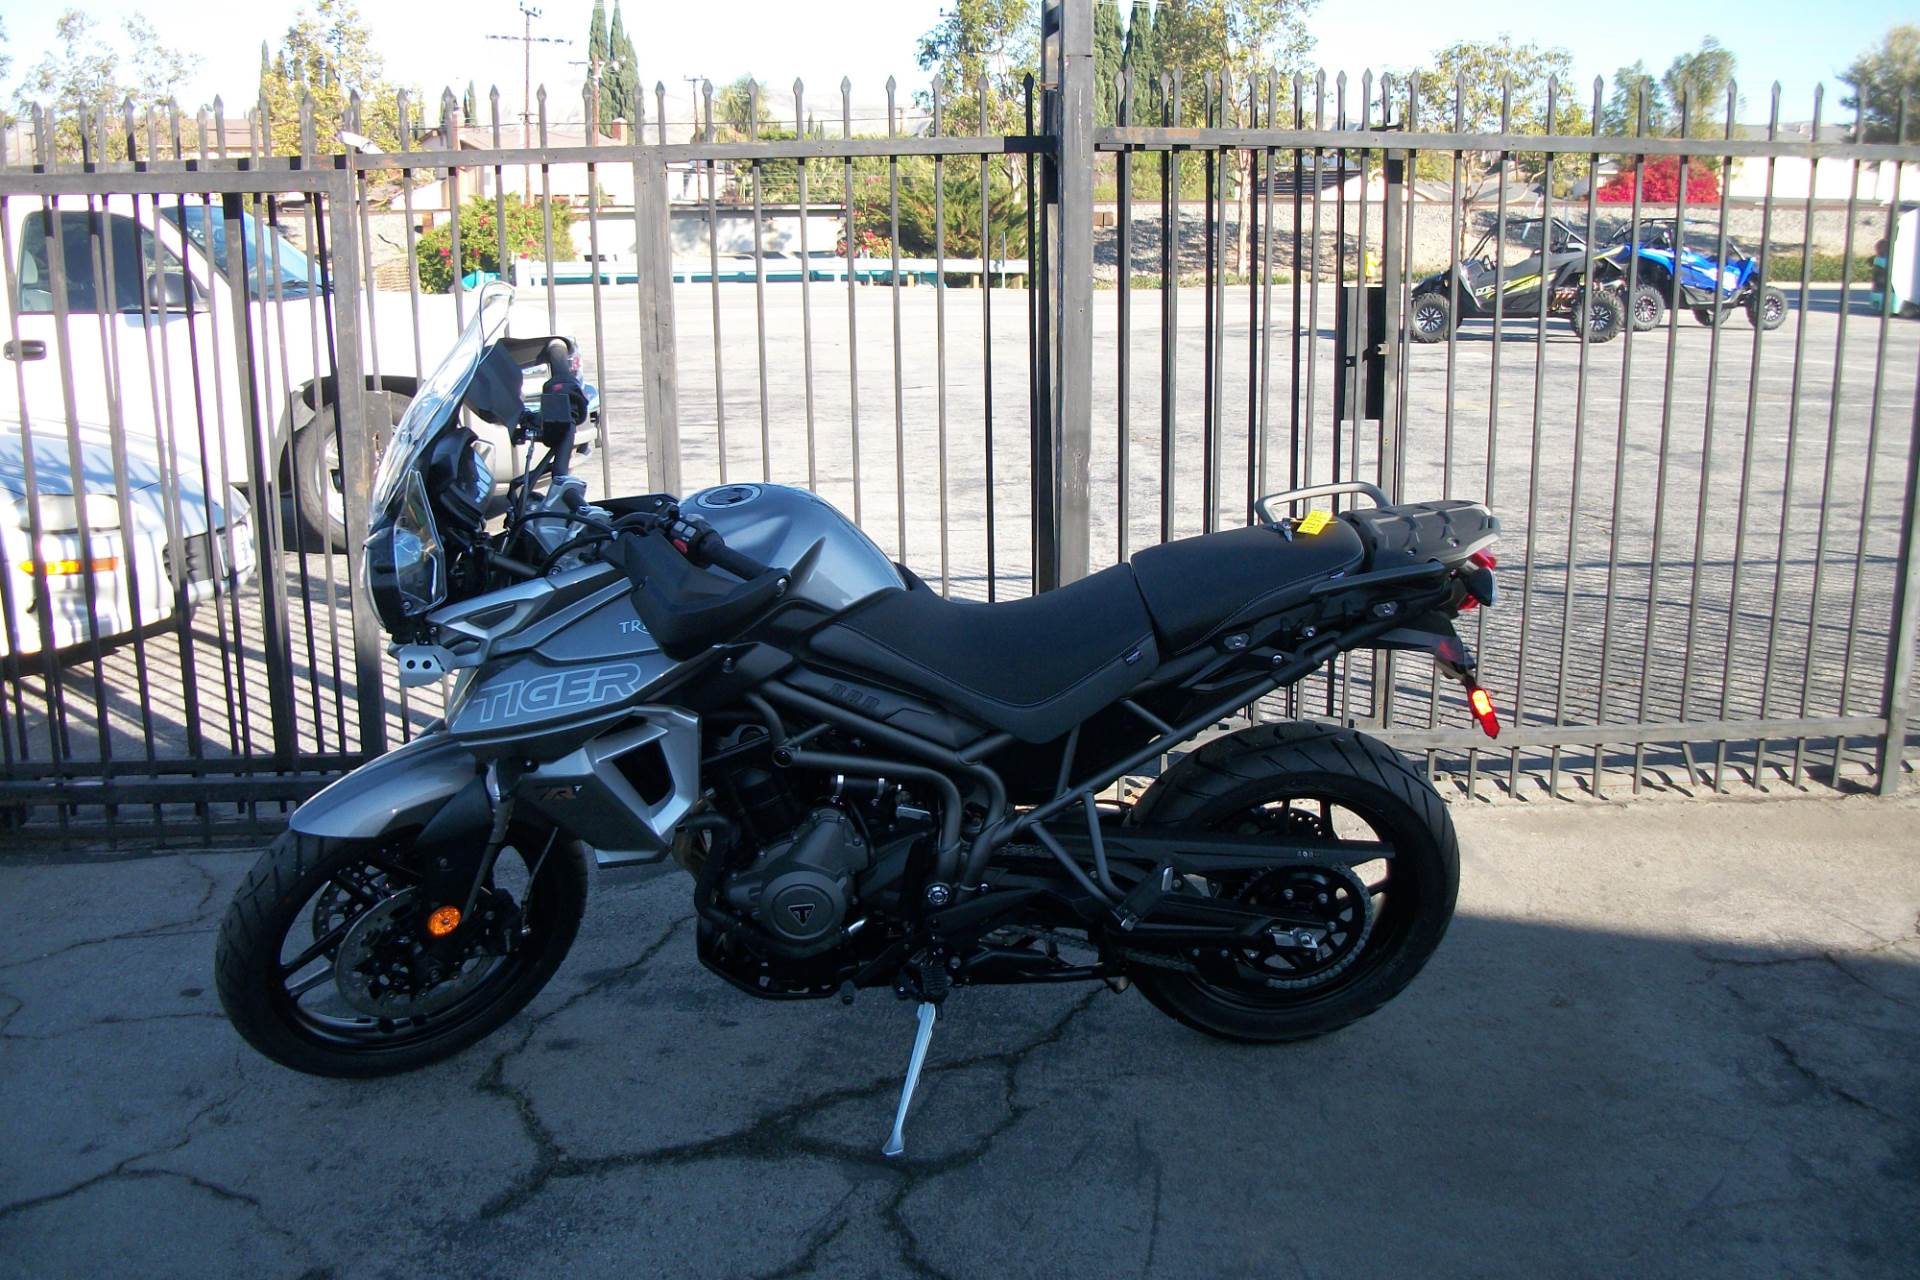 hight resolution of 2019 triumph tiger 800 xrt in simi valley california photo 1